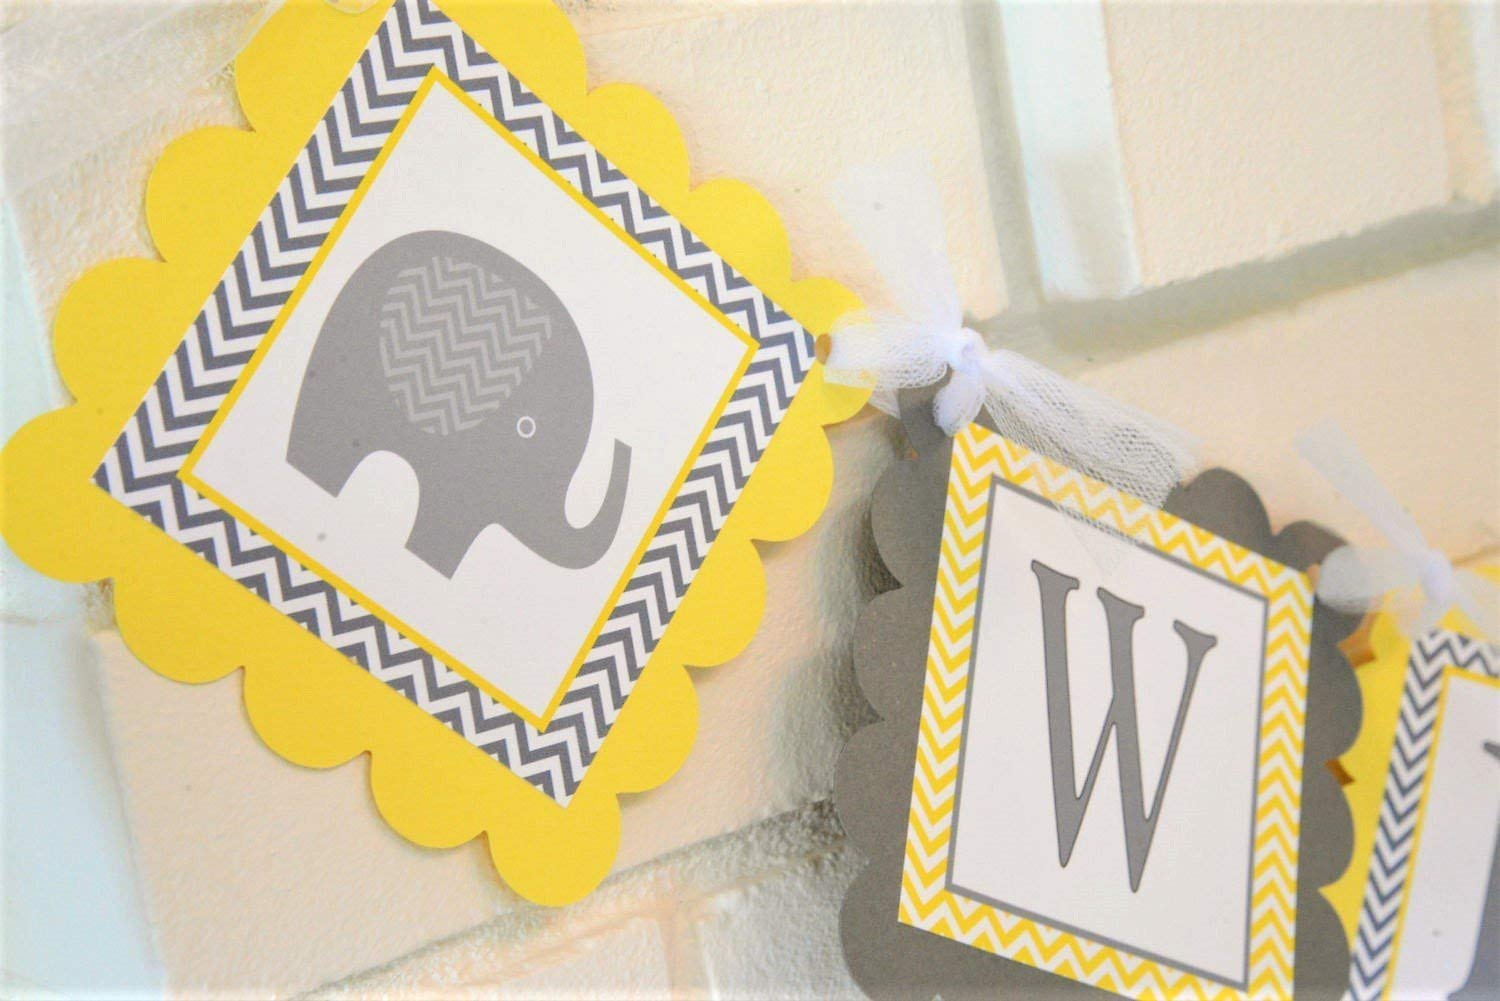 Yellow and Gray Welcome Baby Elephant Baby Shower Banner, Customizable  Welcome Baby Elephant theme Banner in Yellow and Grey, Elephant Baby Shower  ...